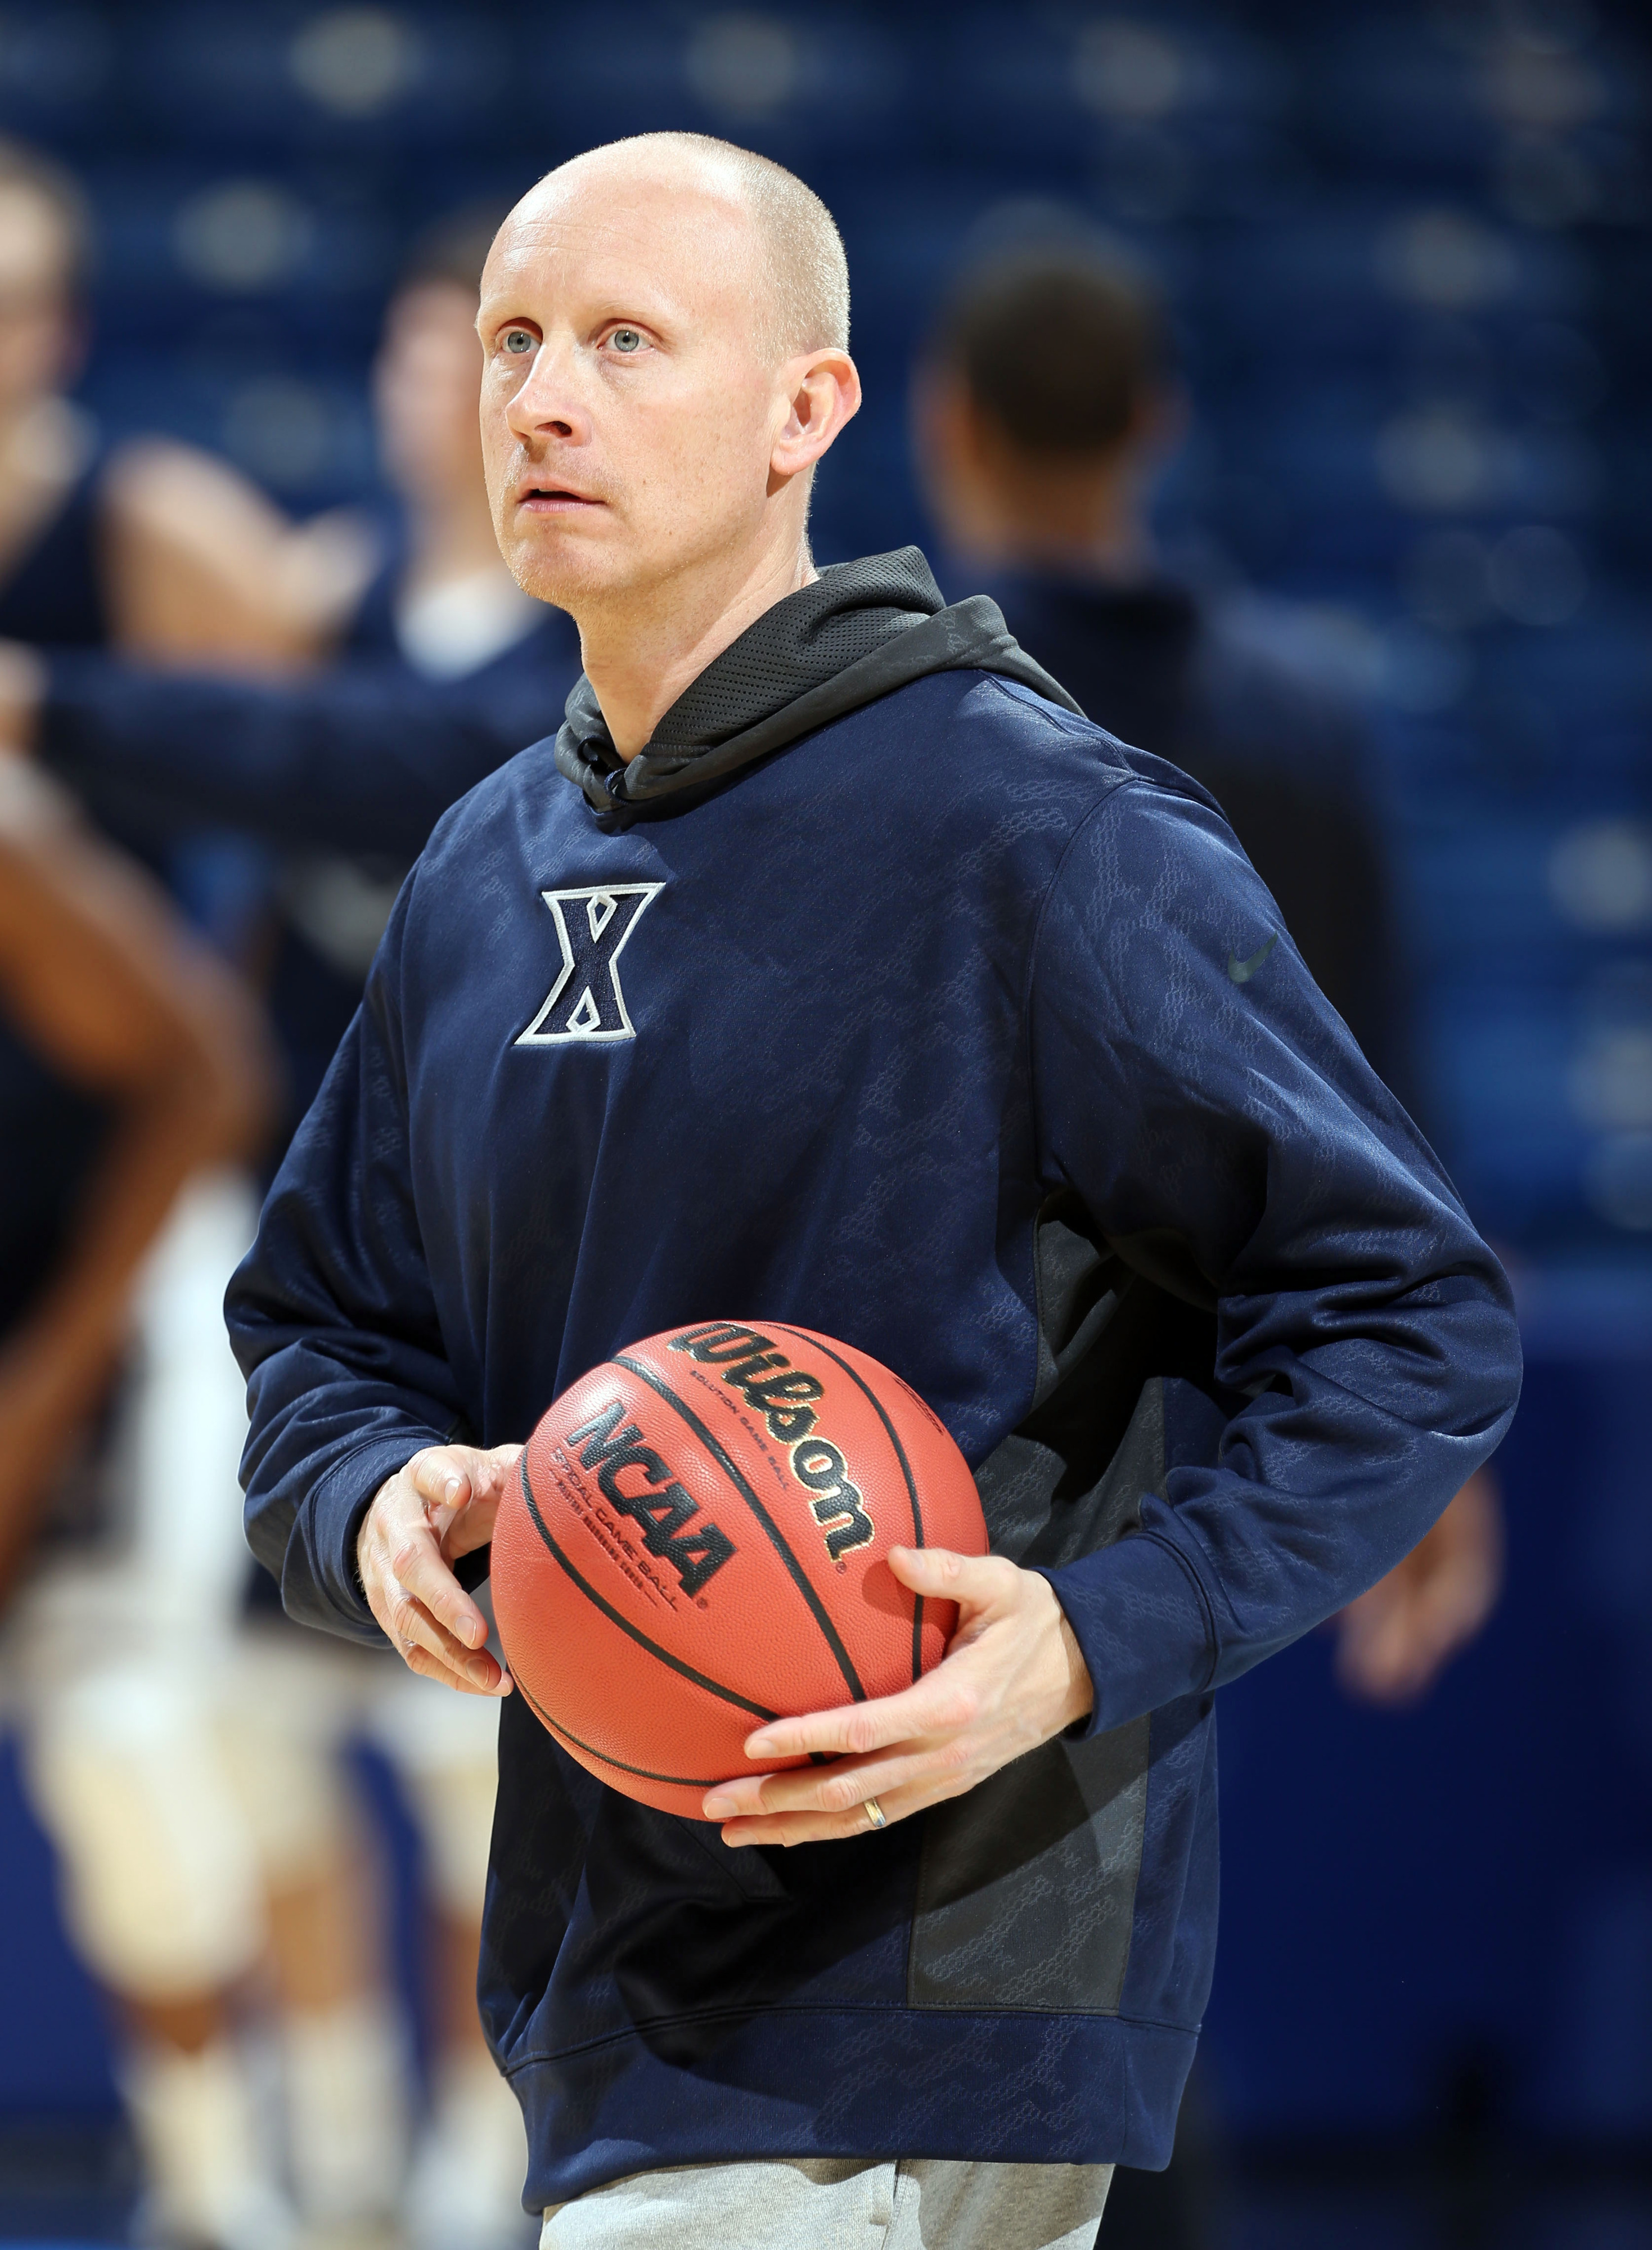 If I don't have a picture of the recruit, I use a picture of the coach. Sorry.